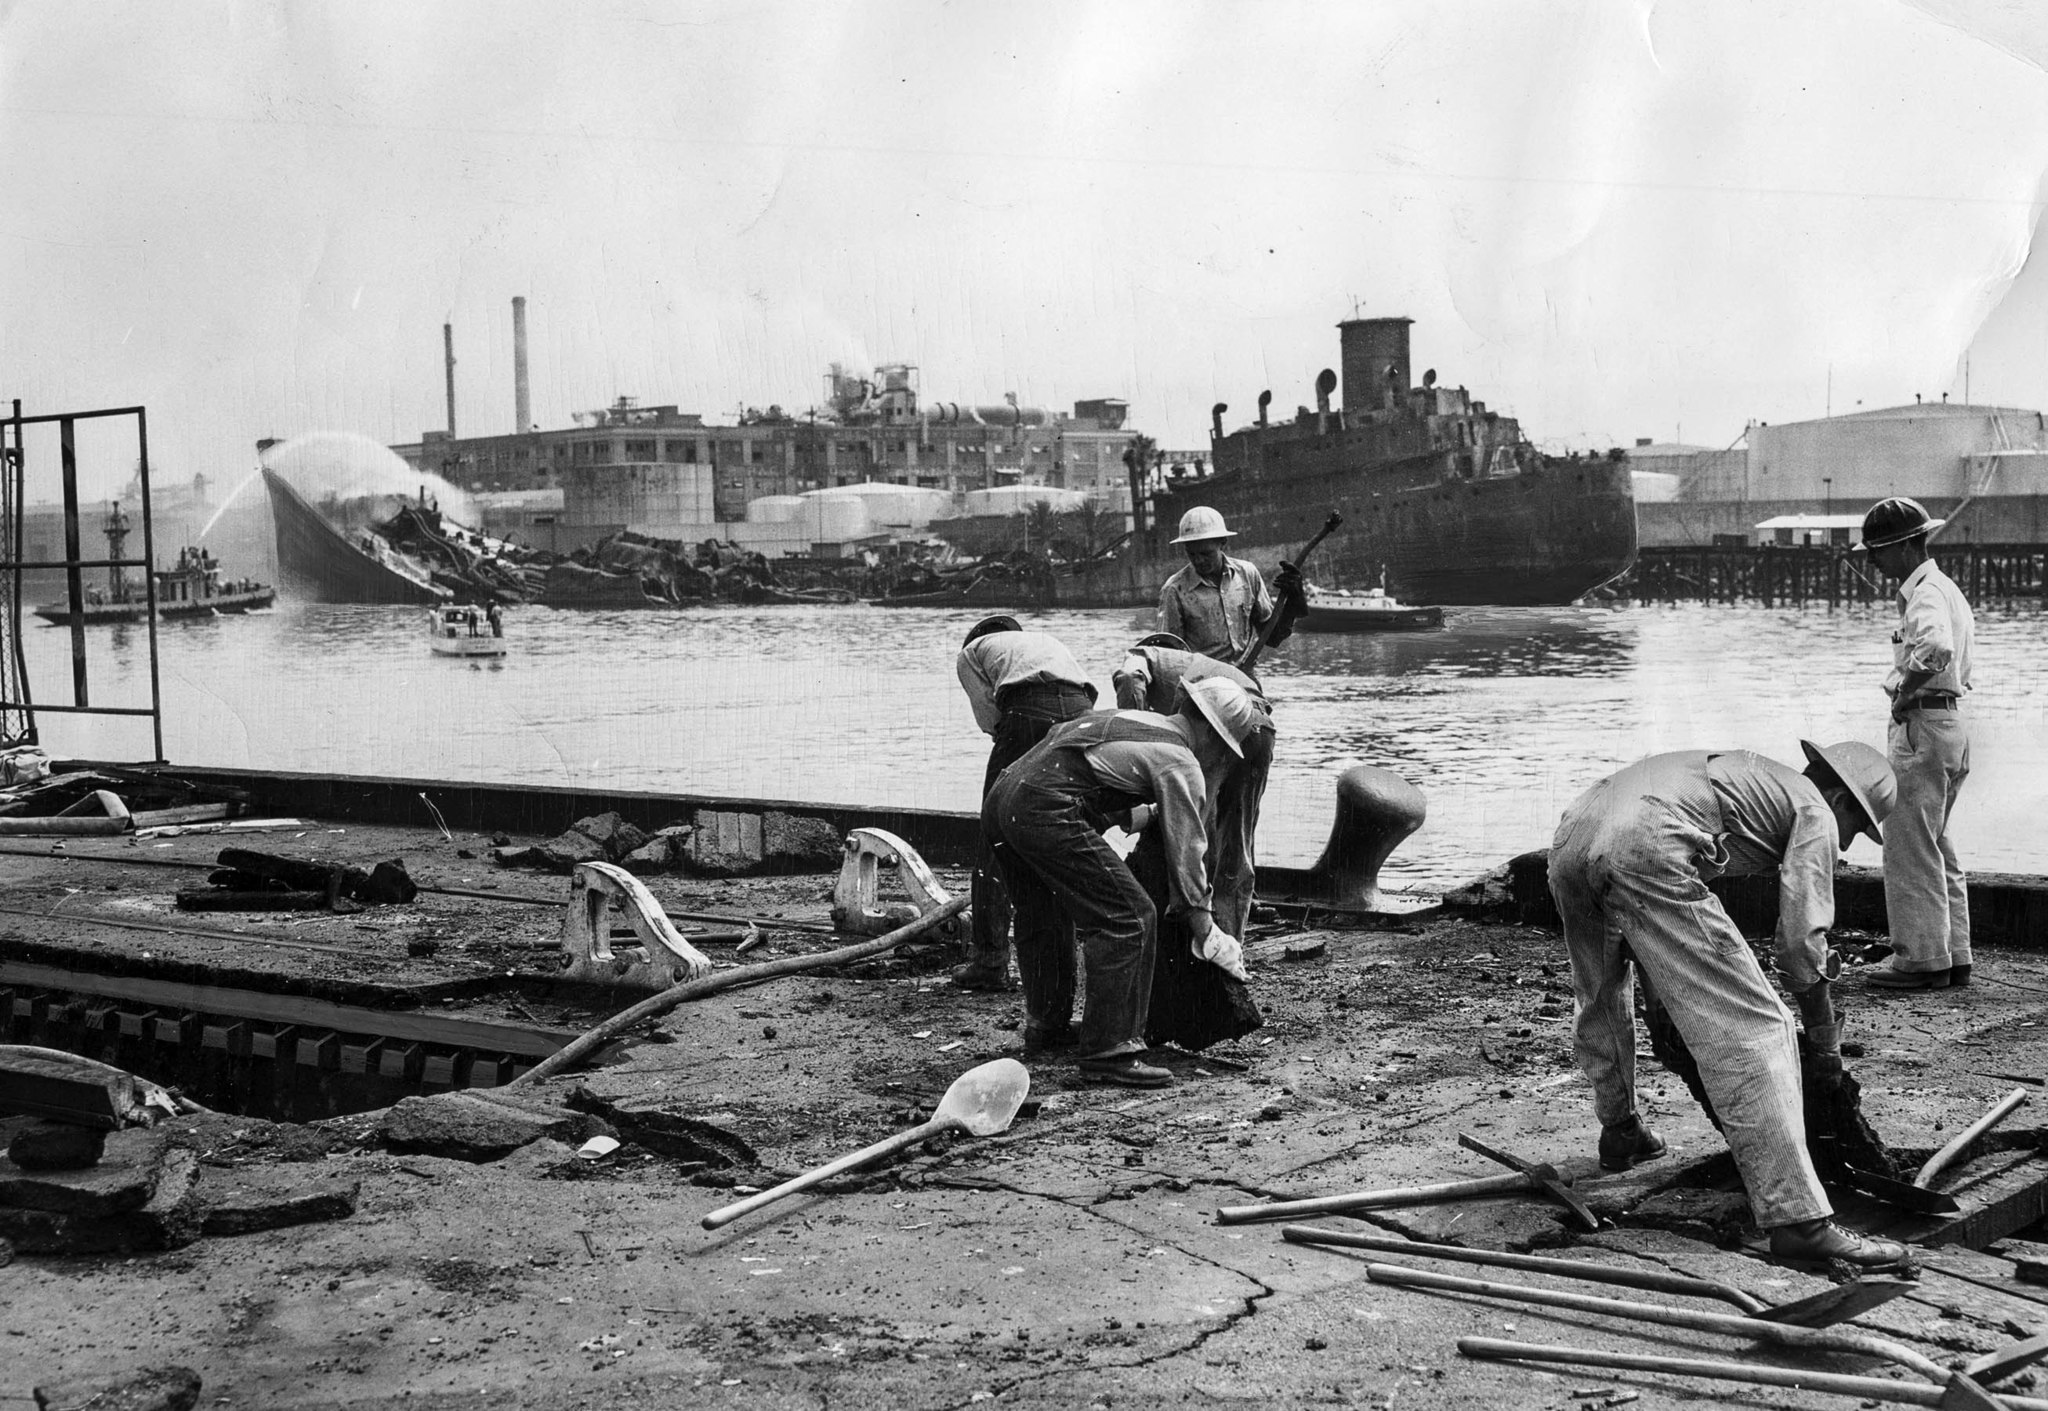 June 23, 1947: The day after an explosion destroyed the tanker S.S. Markay, background, workers tear